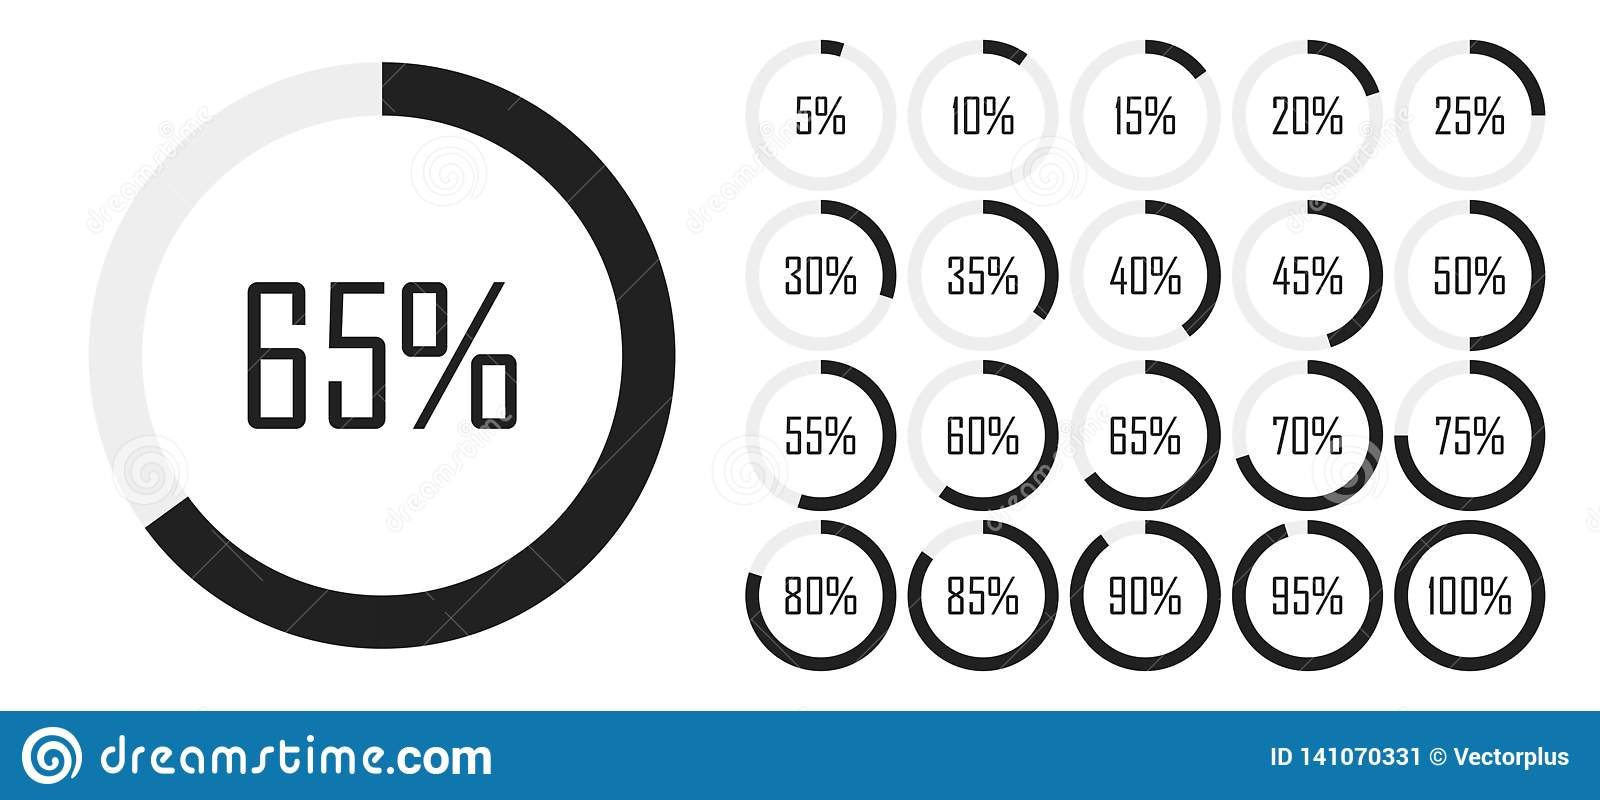 Set of circle percentage diagrams from 0 to 100 for infographics, lignt, 5 10 15 20 25 30 35 40 45 50 55 60 65 70 75 80 85 90 95